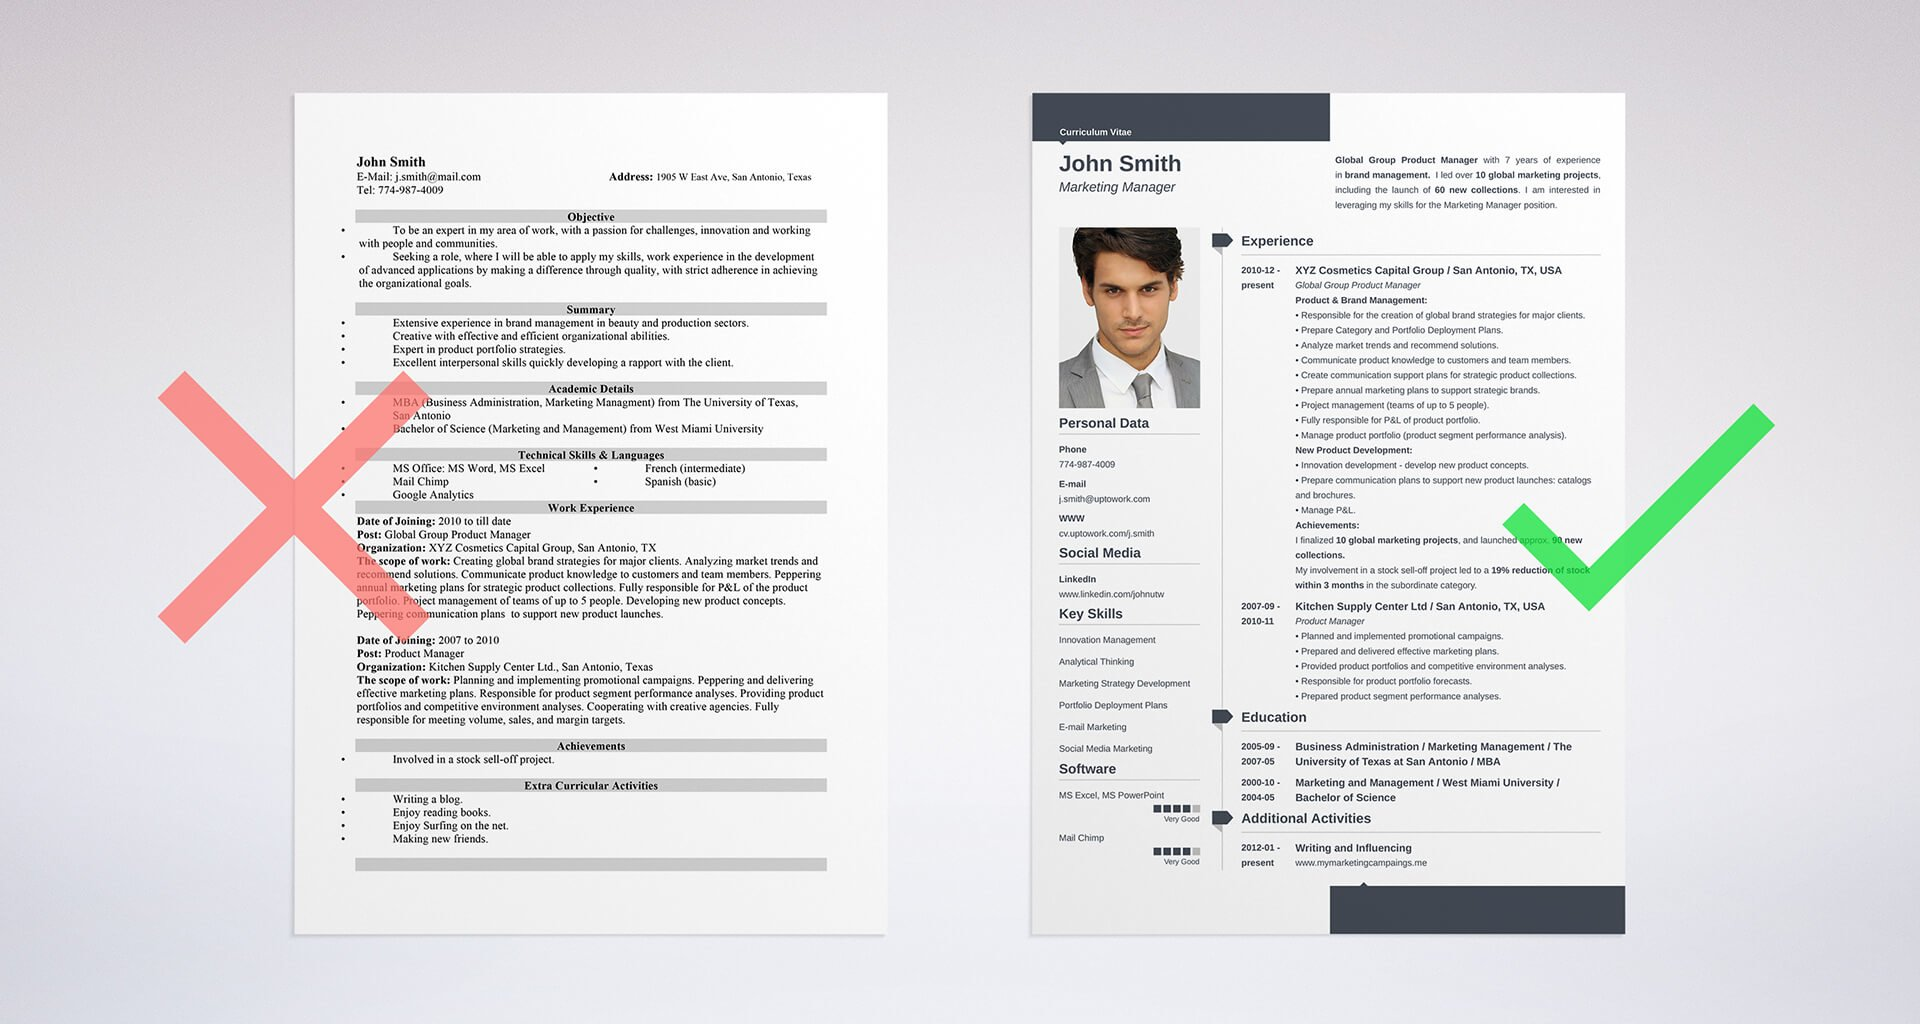 30 best examples of what skills to put on a resume proven tips - Job Skills For Resume